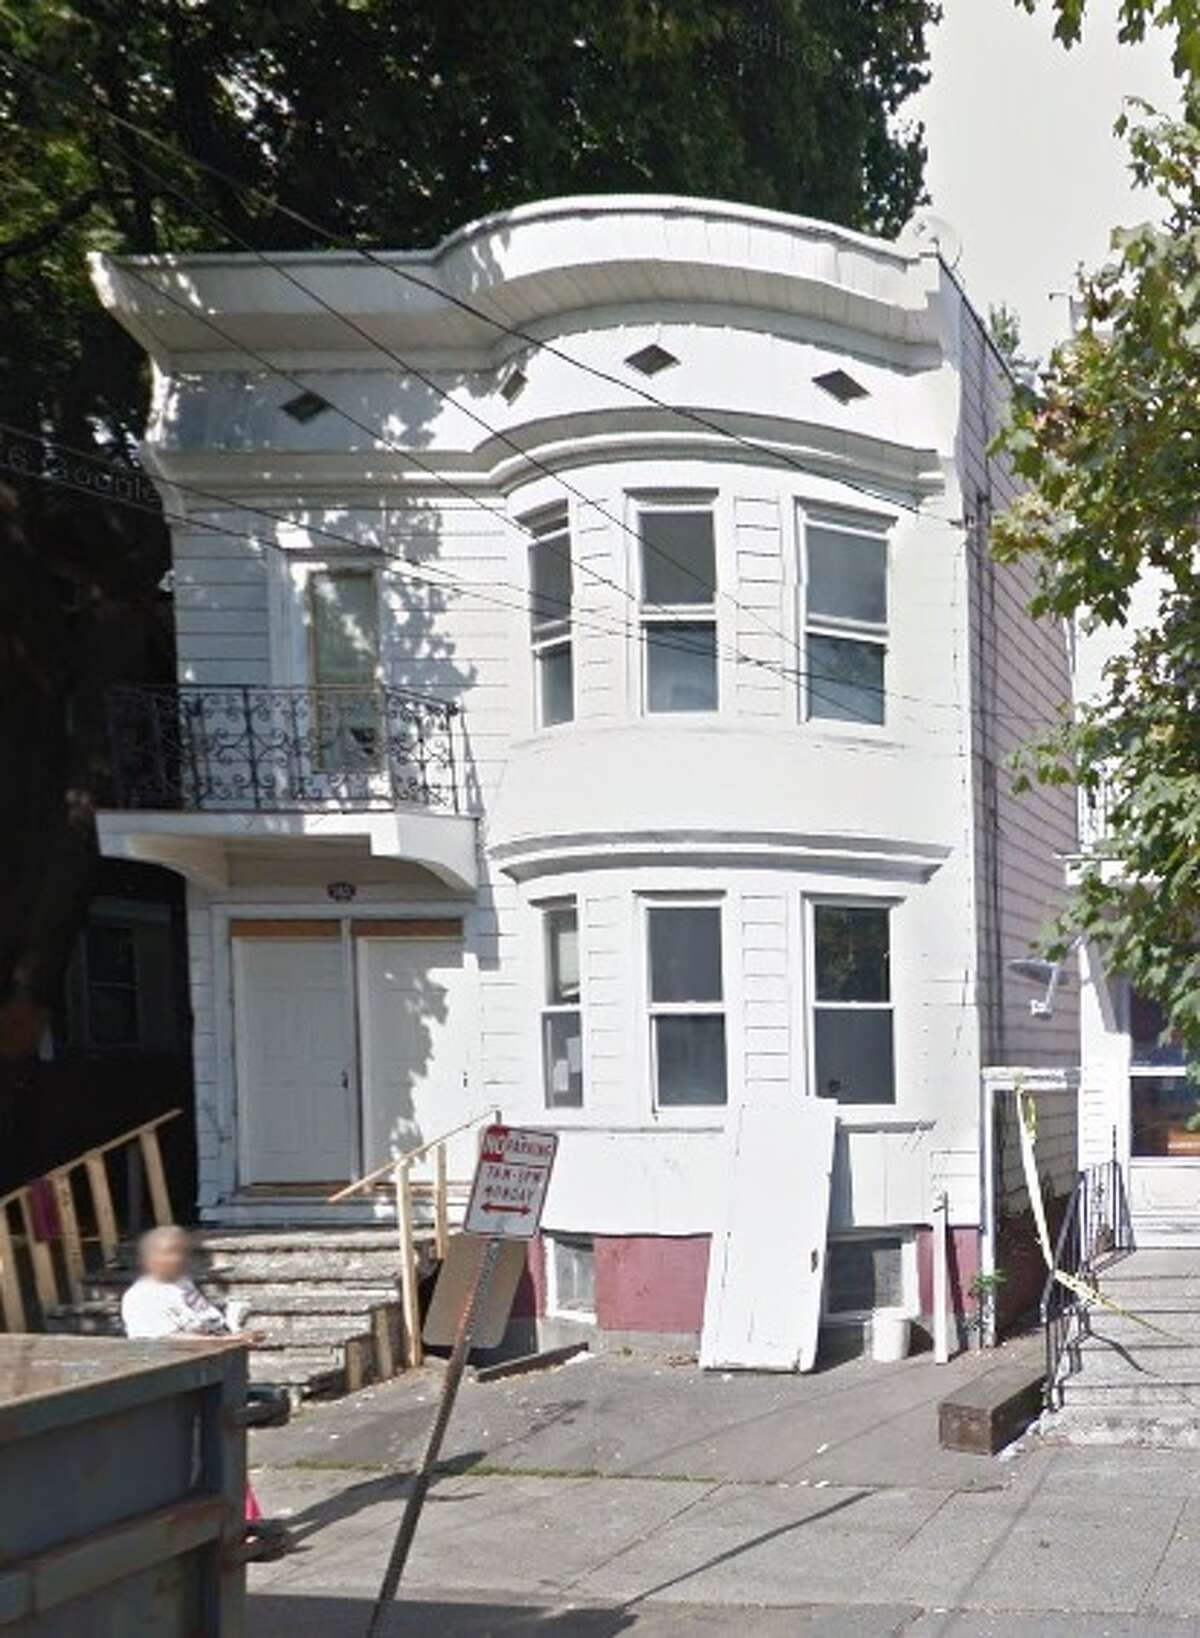 385 Orange St., Albany, $16,500 (Google Maps)